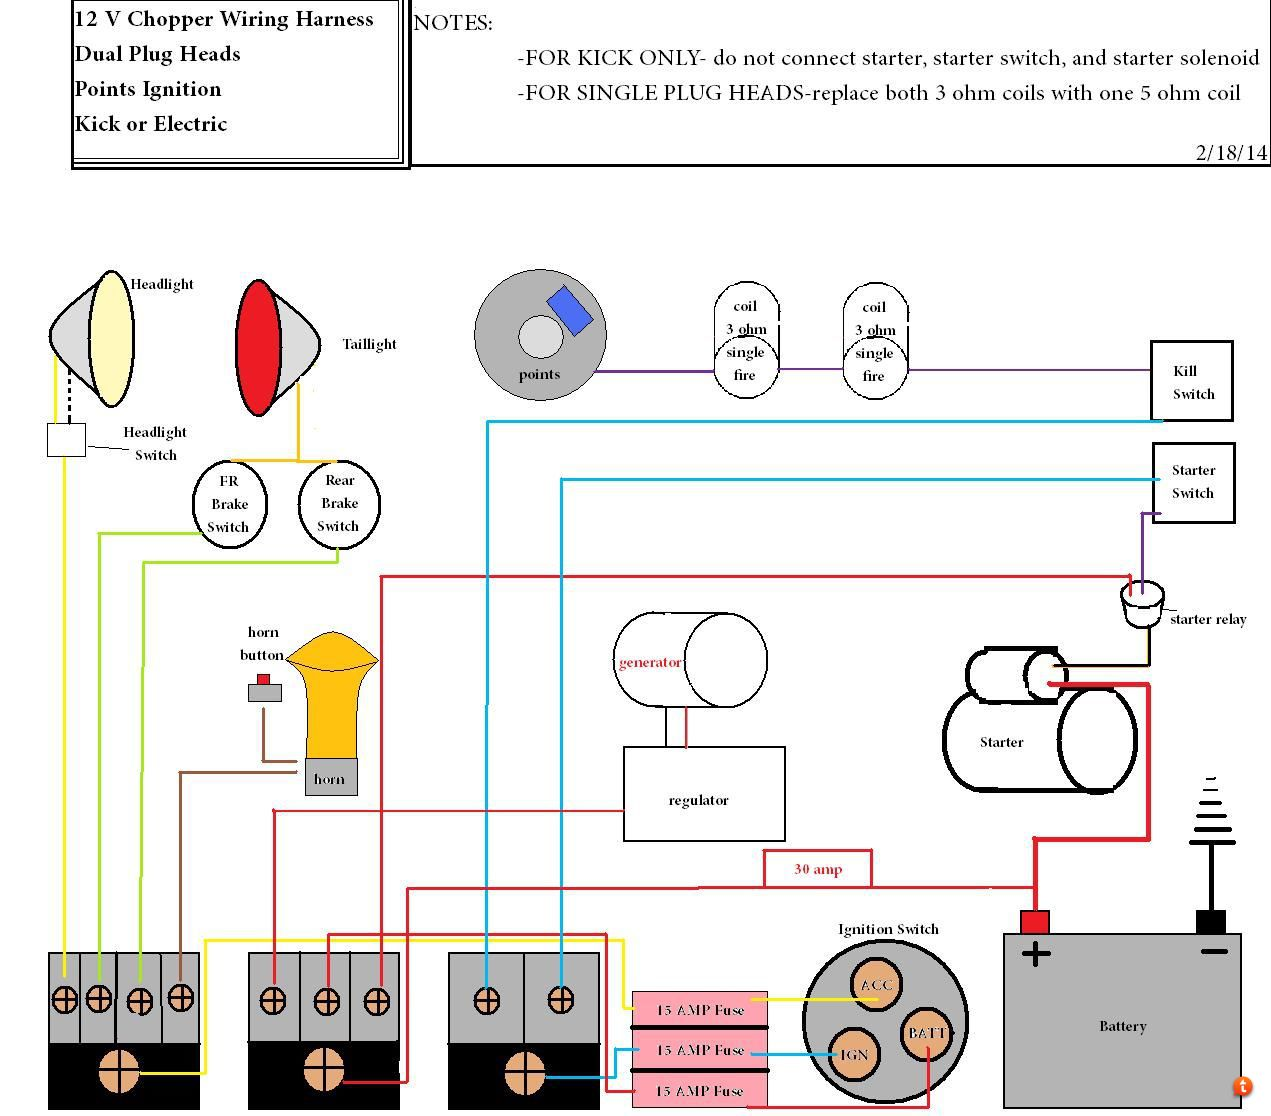 Proofread My Shovelhead Wiring Diagram 4 Wire Starter Solenoid I Realize That For Single Fire Need An Electronic Ignition Before Anyone Corrects But If Has Any Suggestions On How To Make It Better Please